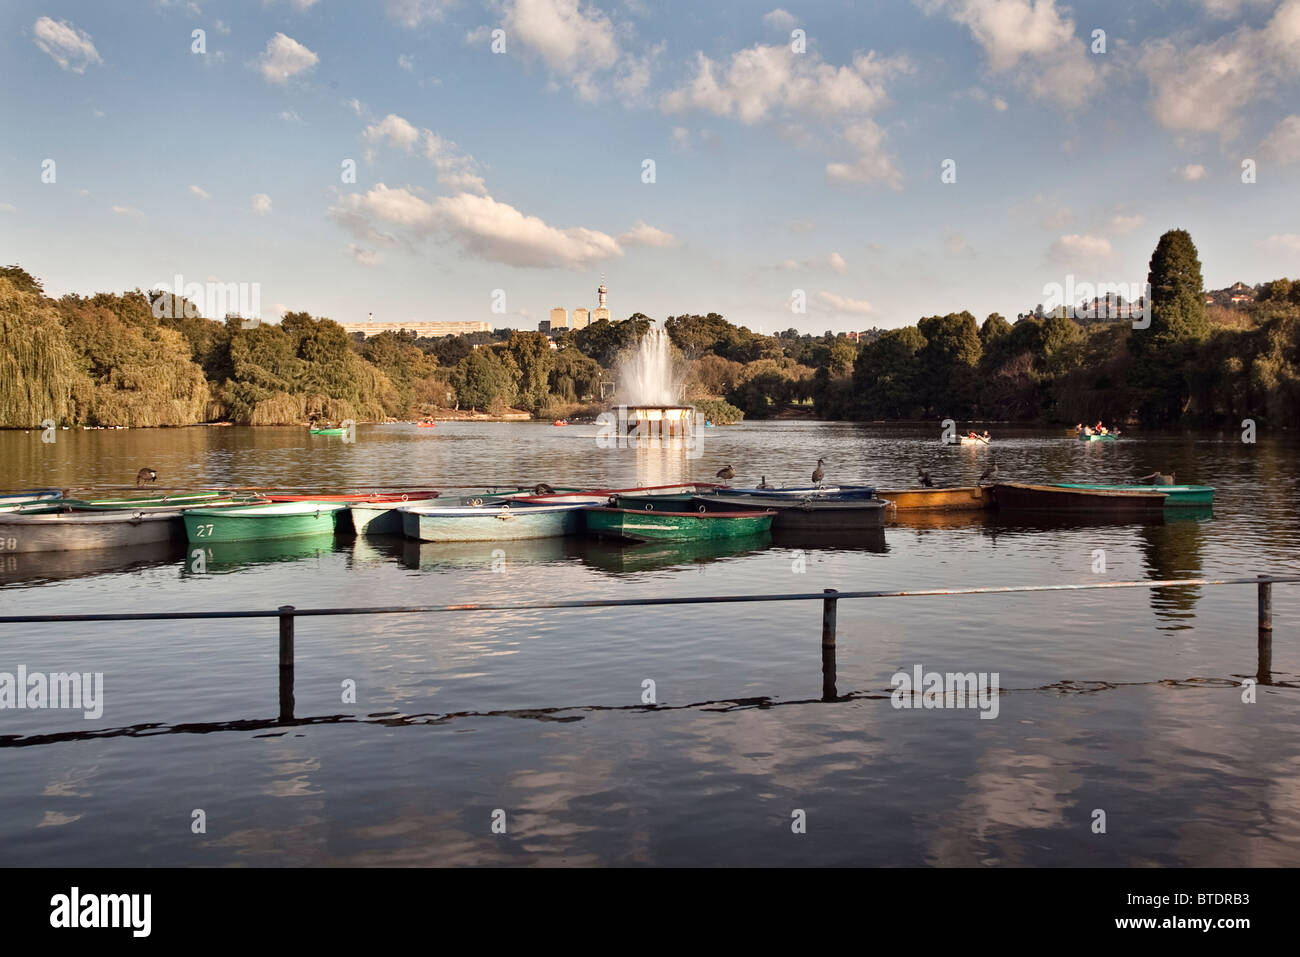 Rowing boats at Zoo Lake with a fountain in the background - Stock Image